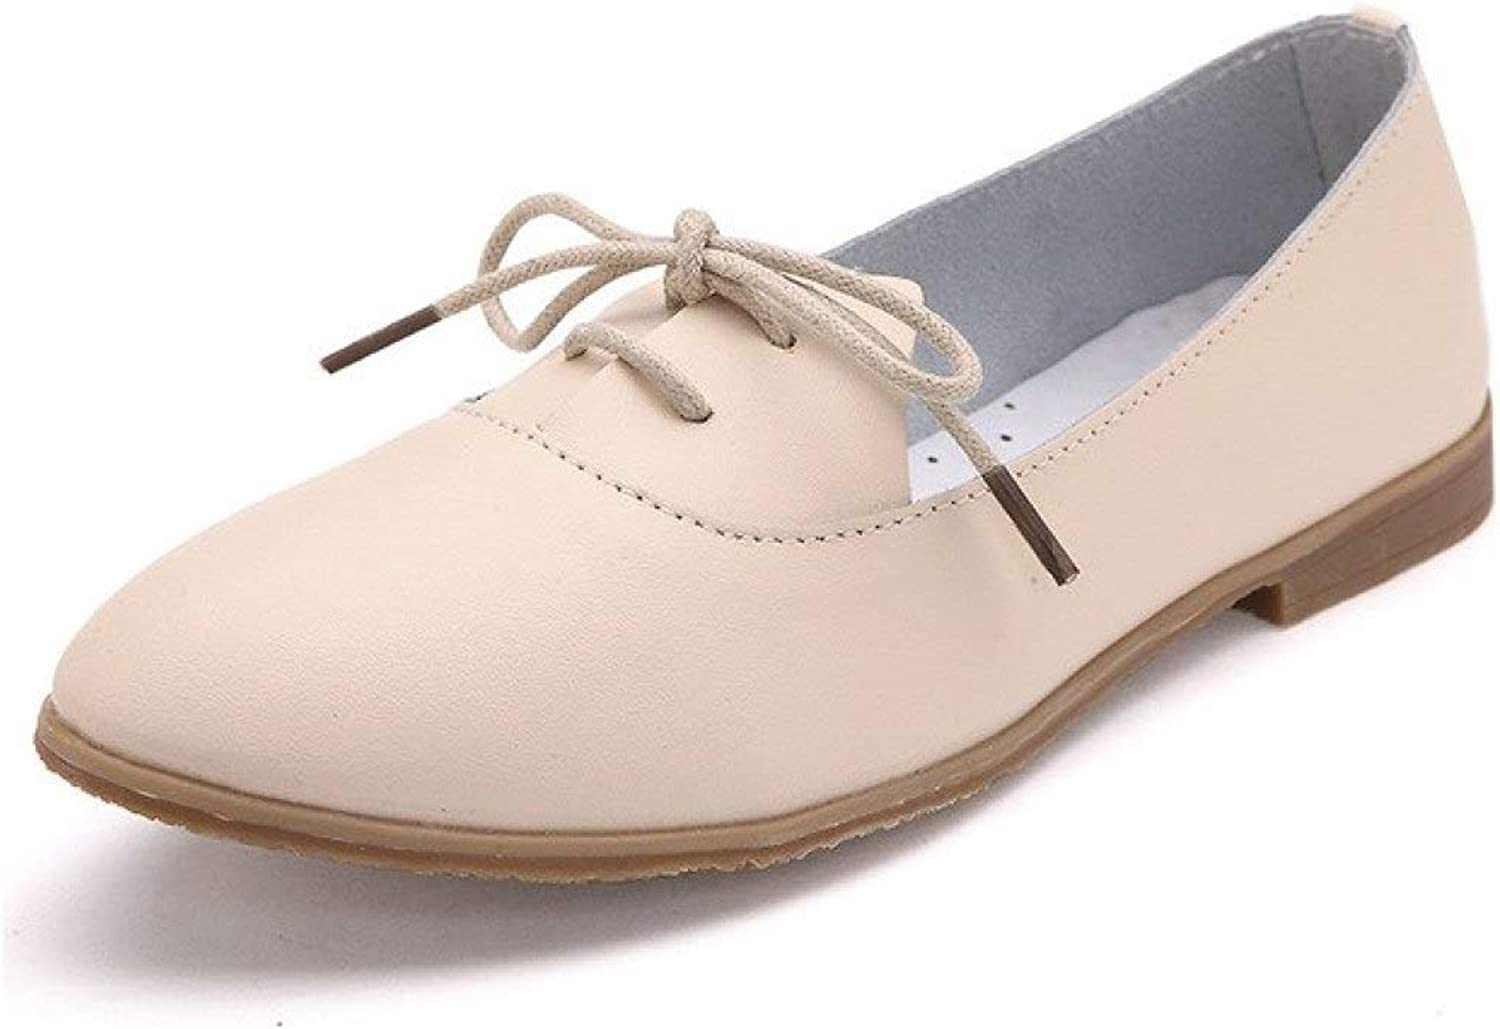 Pointed Toe Ballet Flats for Women Lace Up Slip On Moccasins Casual Walking shoes Apricot